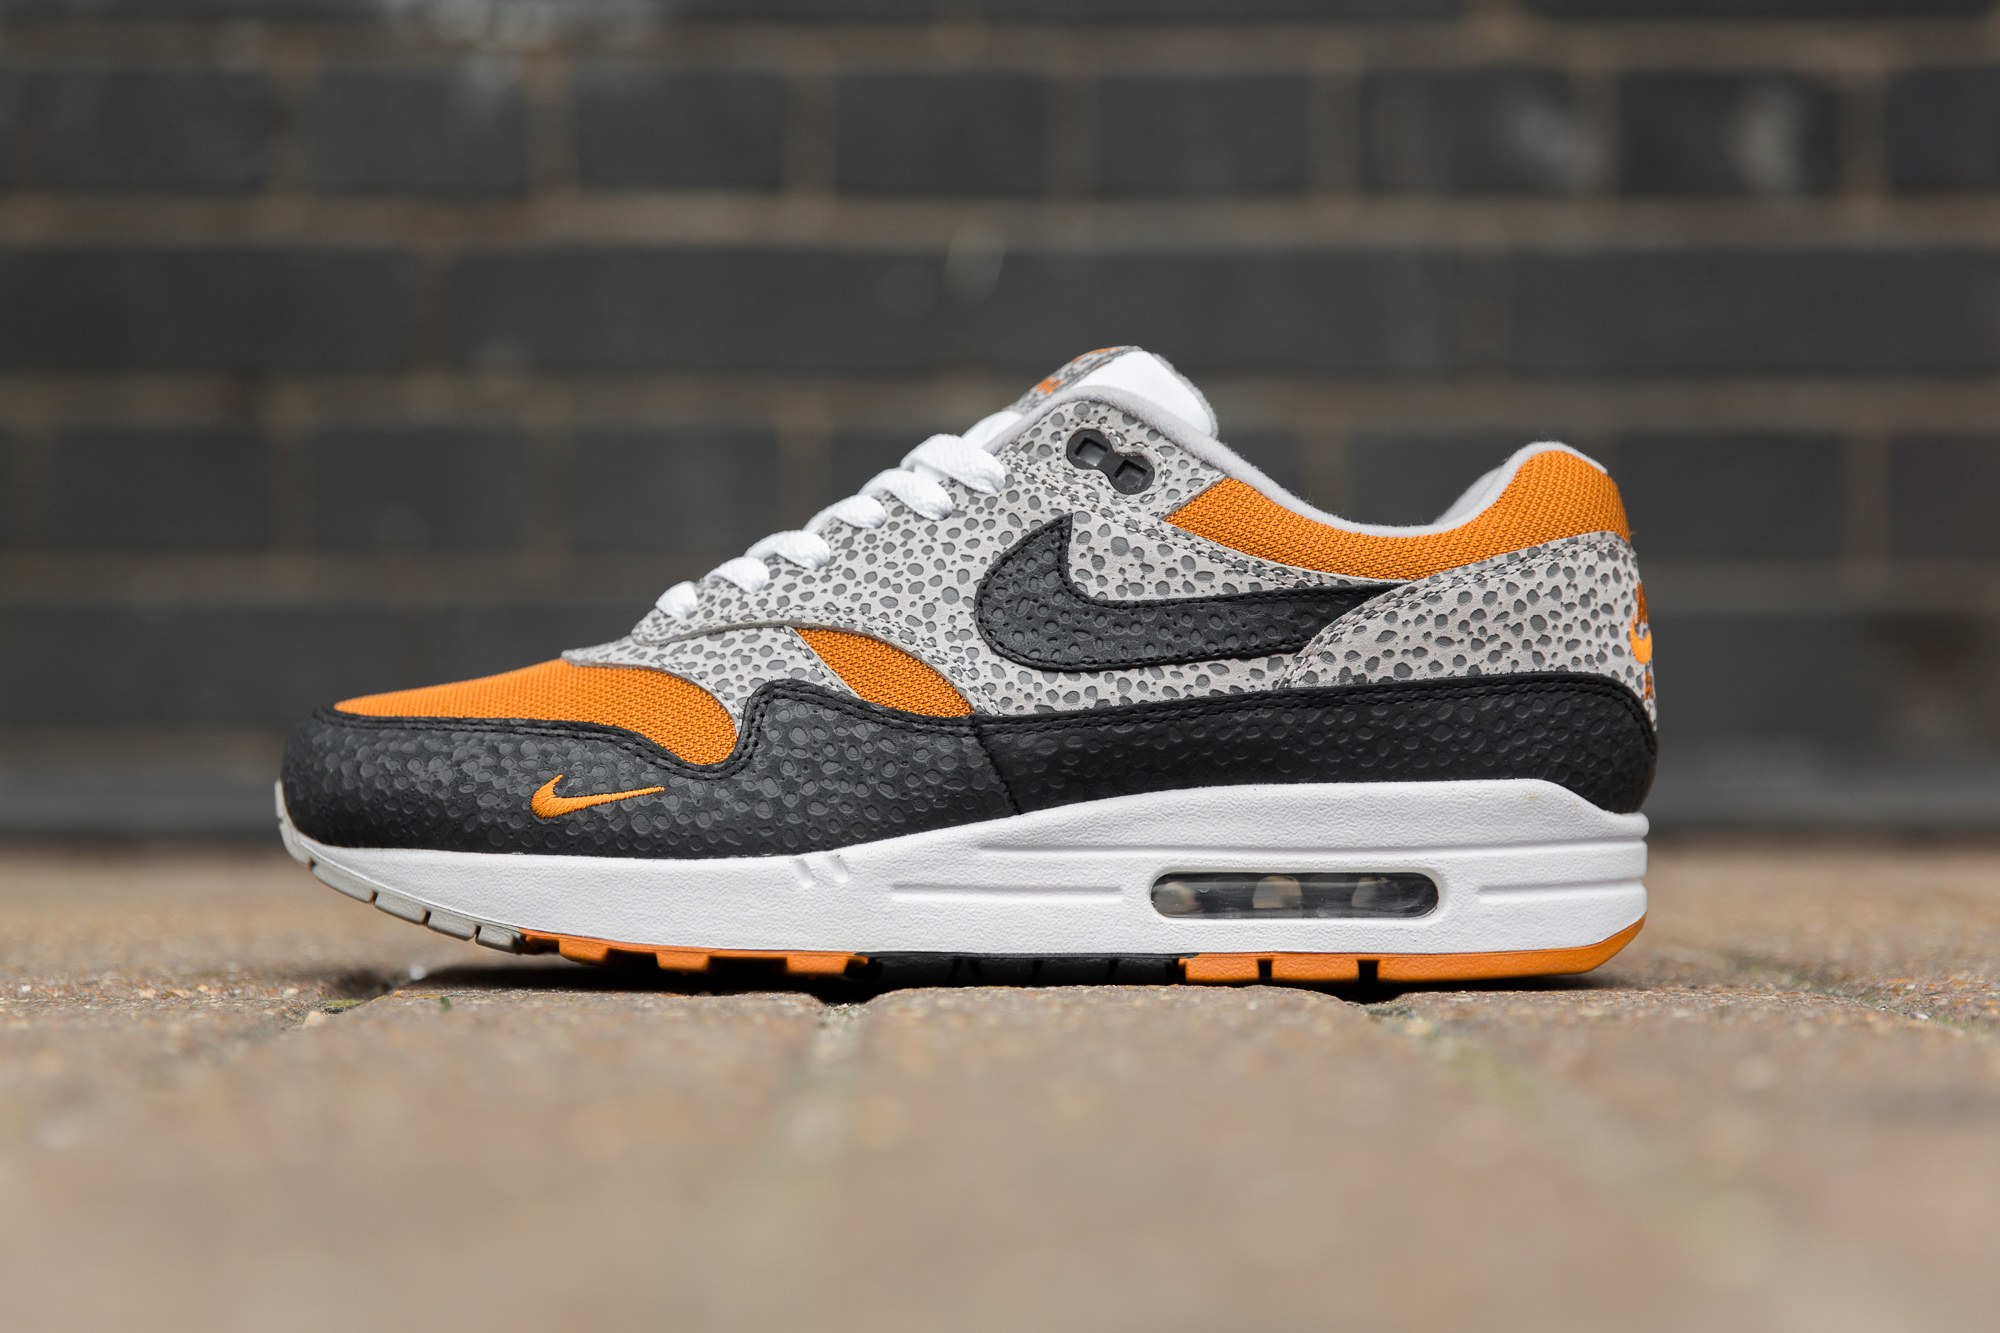 magasin en ligne 6fa67 66606 size? Exclusive - Nike Air Max 1 'Safari' - size? blog